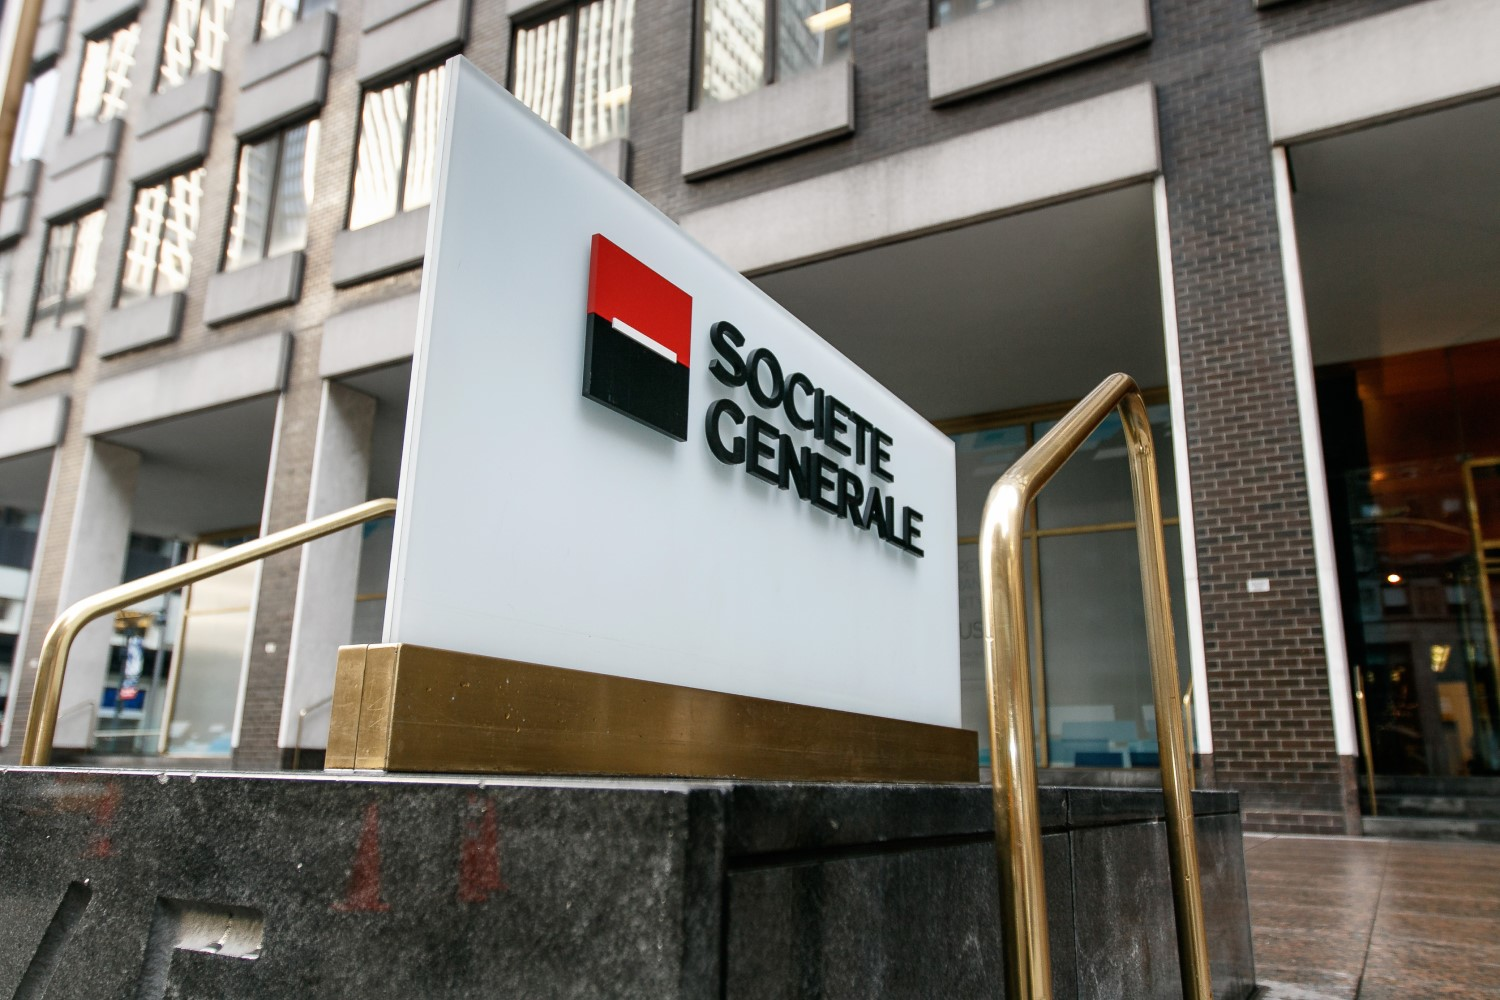 societe generale owned bank lancia blockchain exchange note - Societe Generale-Owned Bank lancia Blockchain Exchange Note